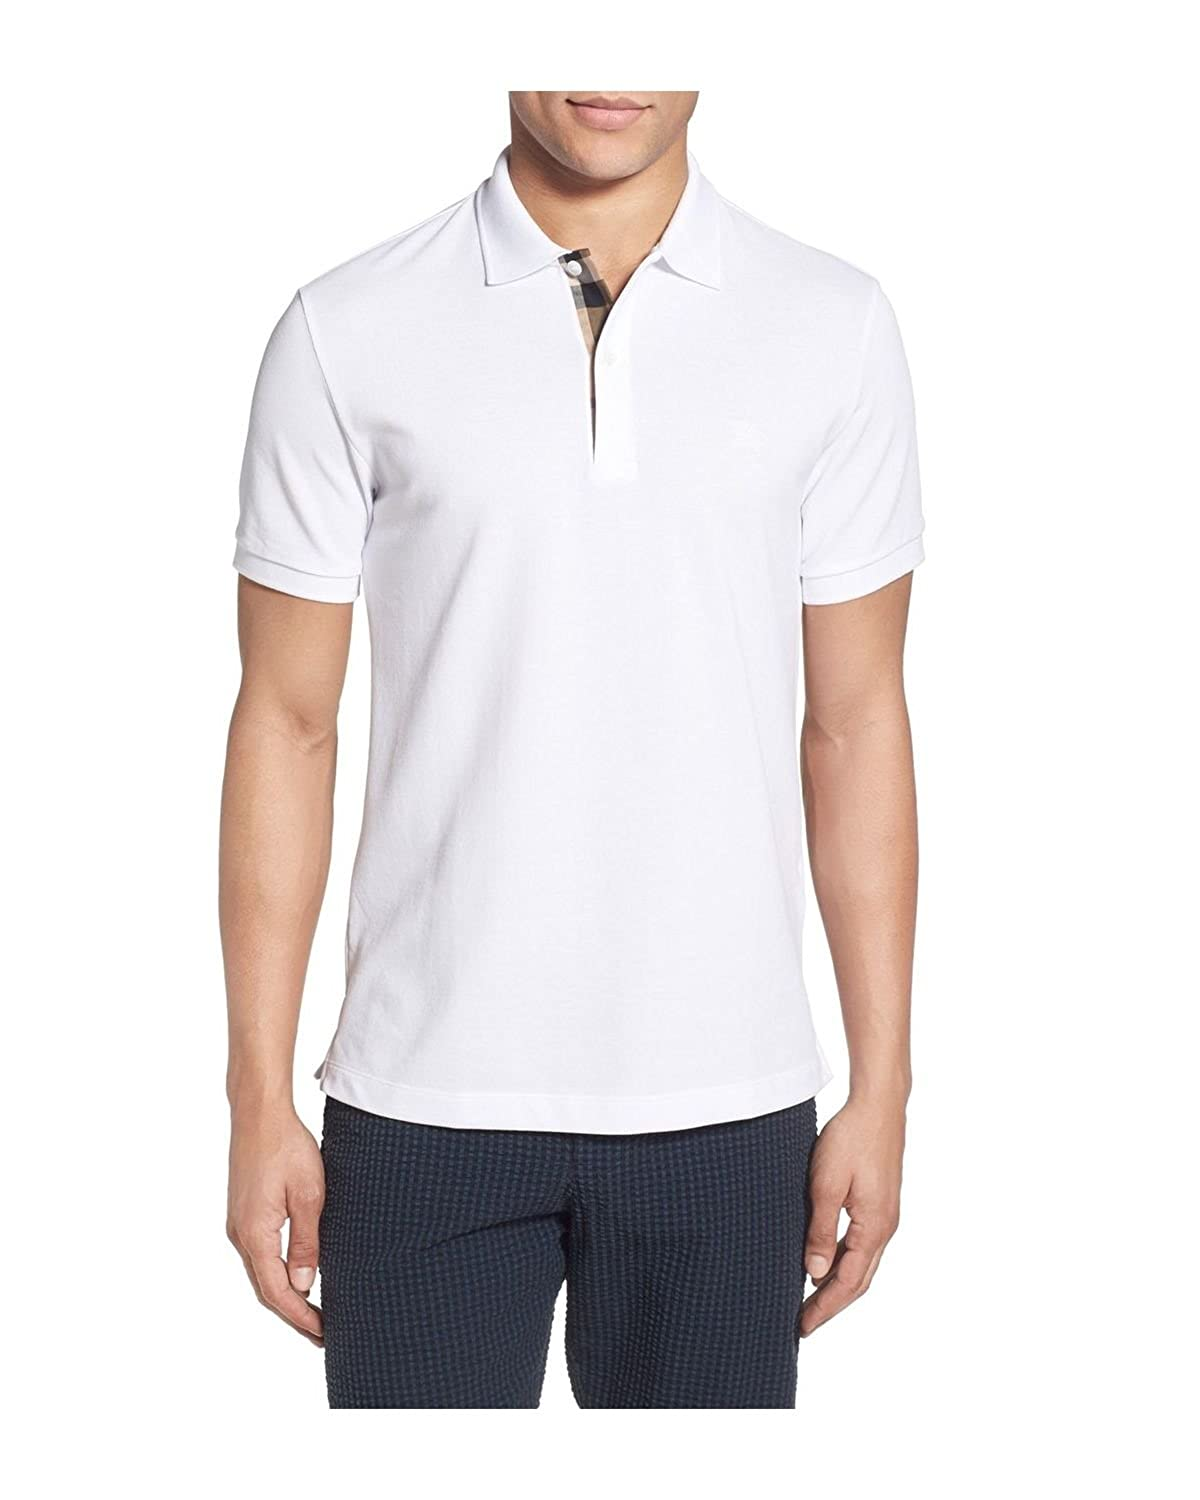 BURBERRY - Polo para Hombre OXFORD - blanco, L: Amazon.es: Ropa y ...